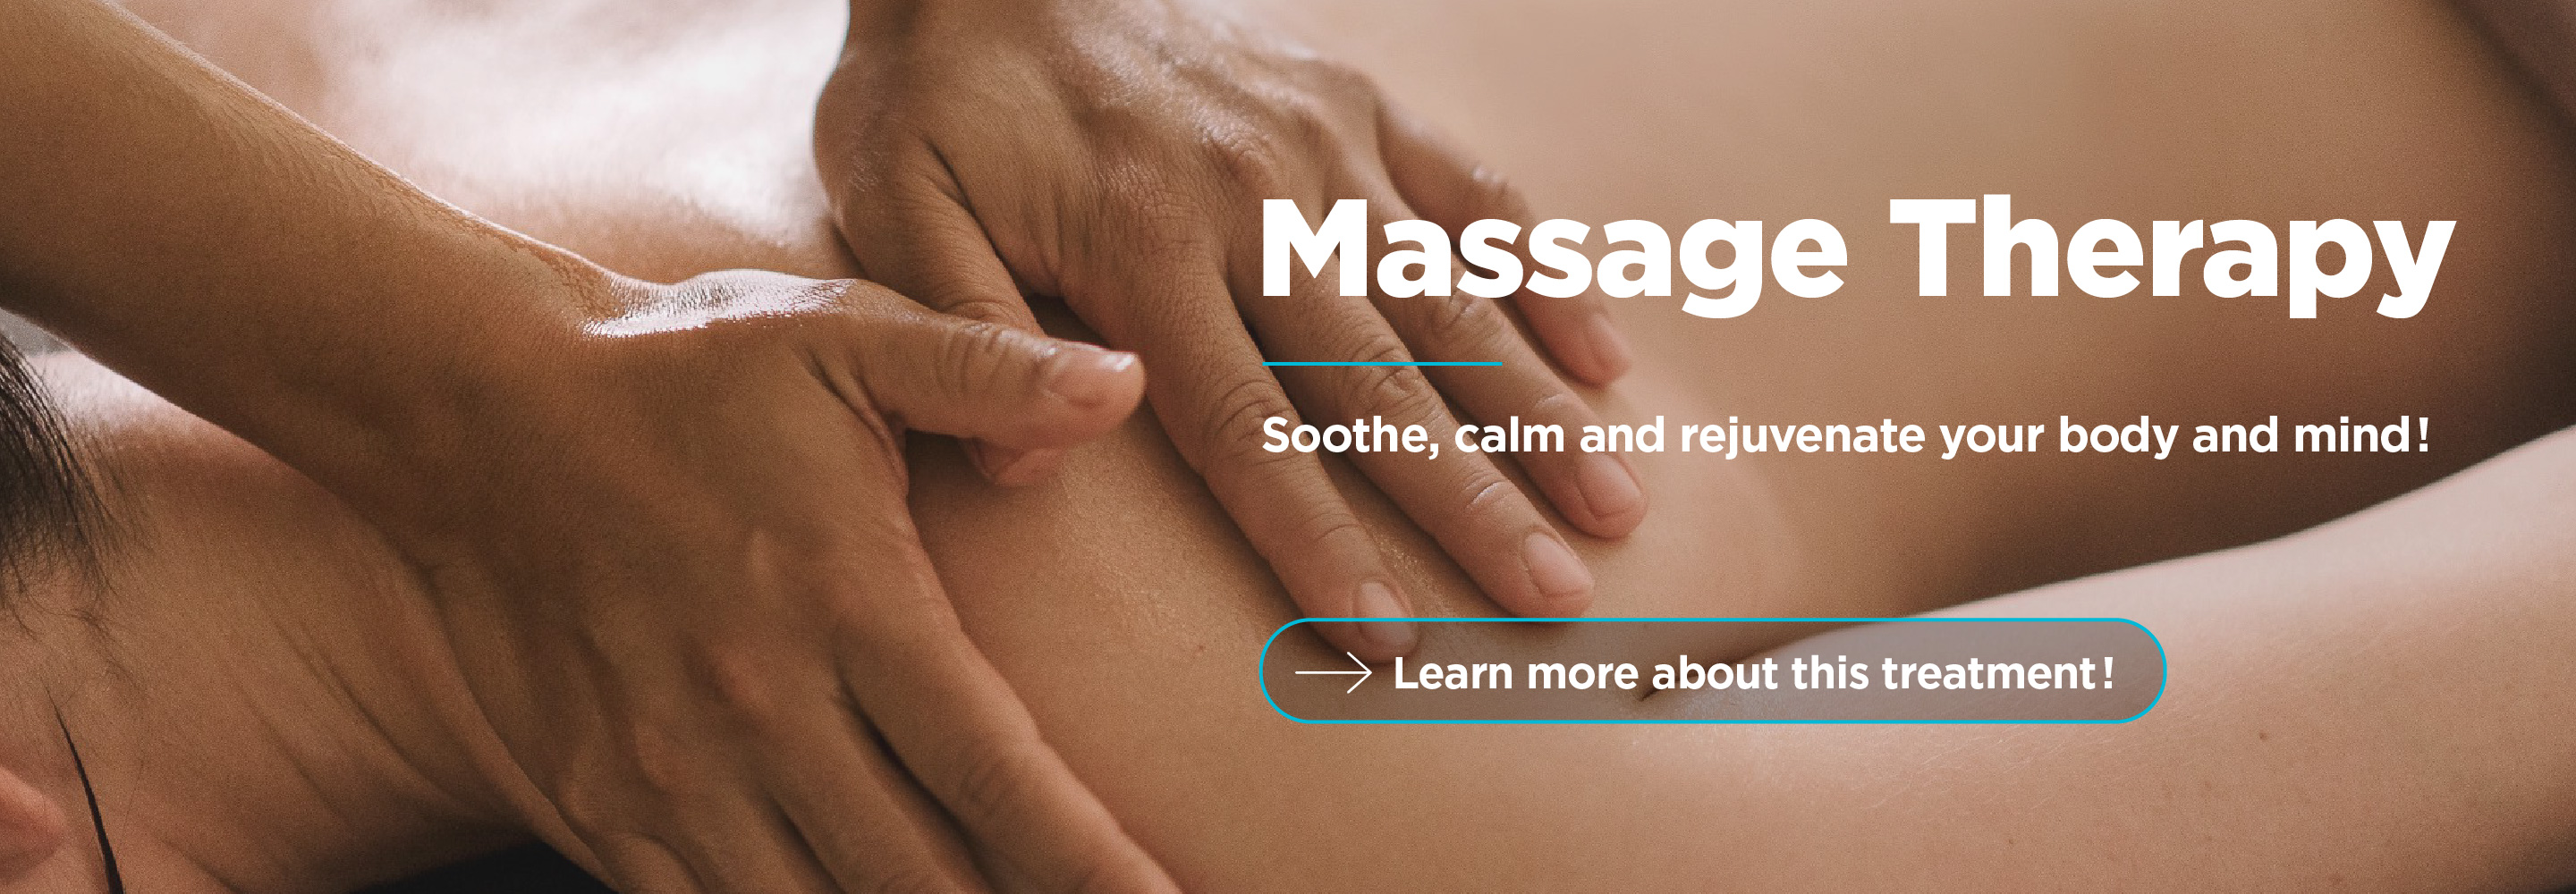 carrousel_massage_therapy_vFinal